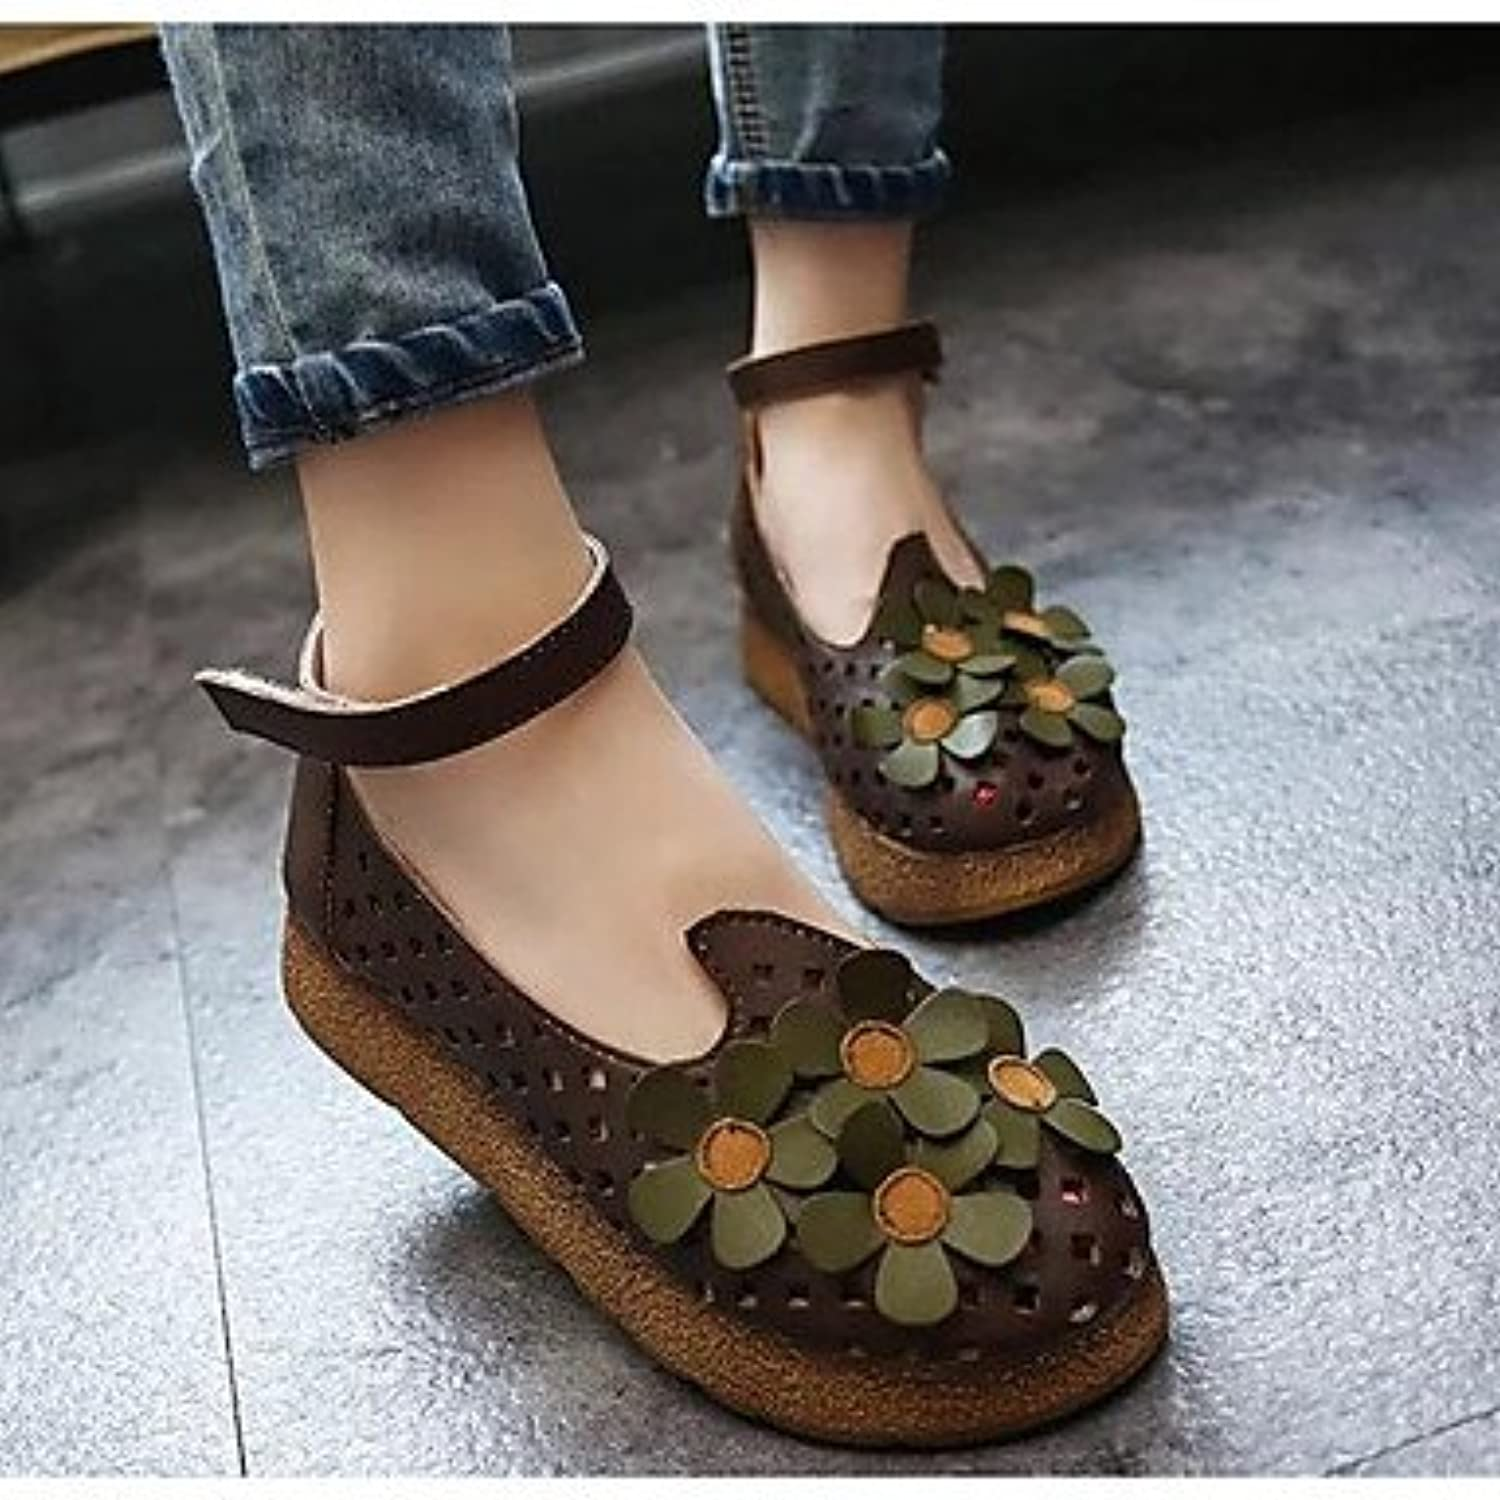 536d4f9a853b5 Women s Sandals Comfort PU Summer Casual Comfort Green Coffee ...